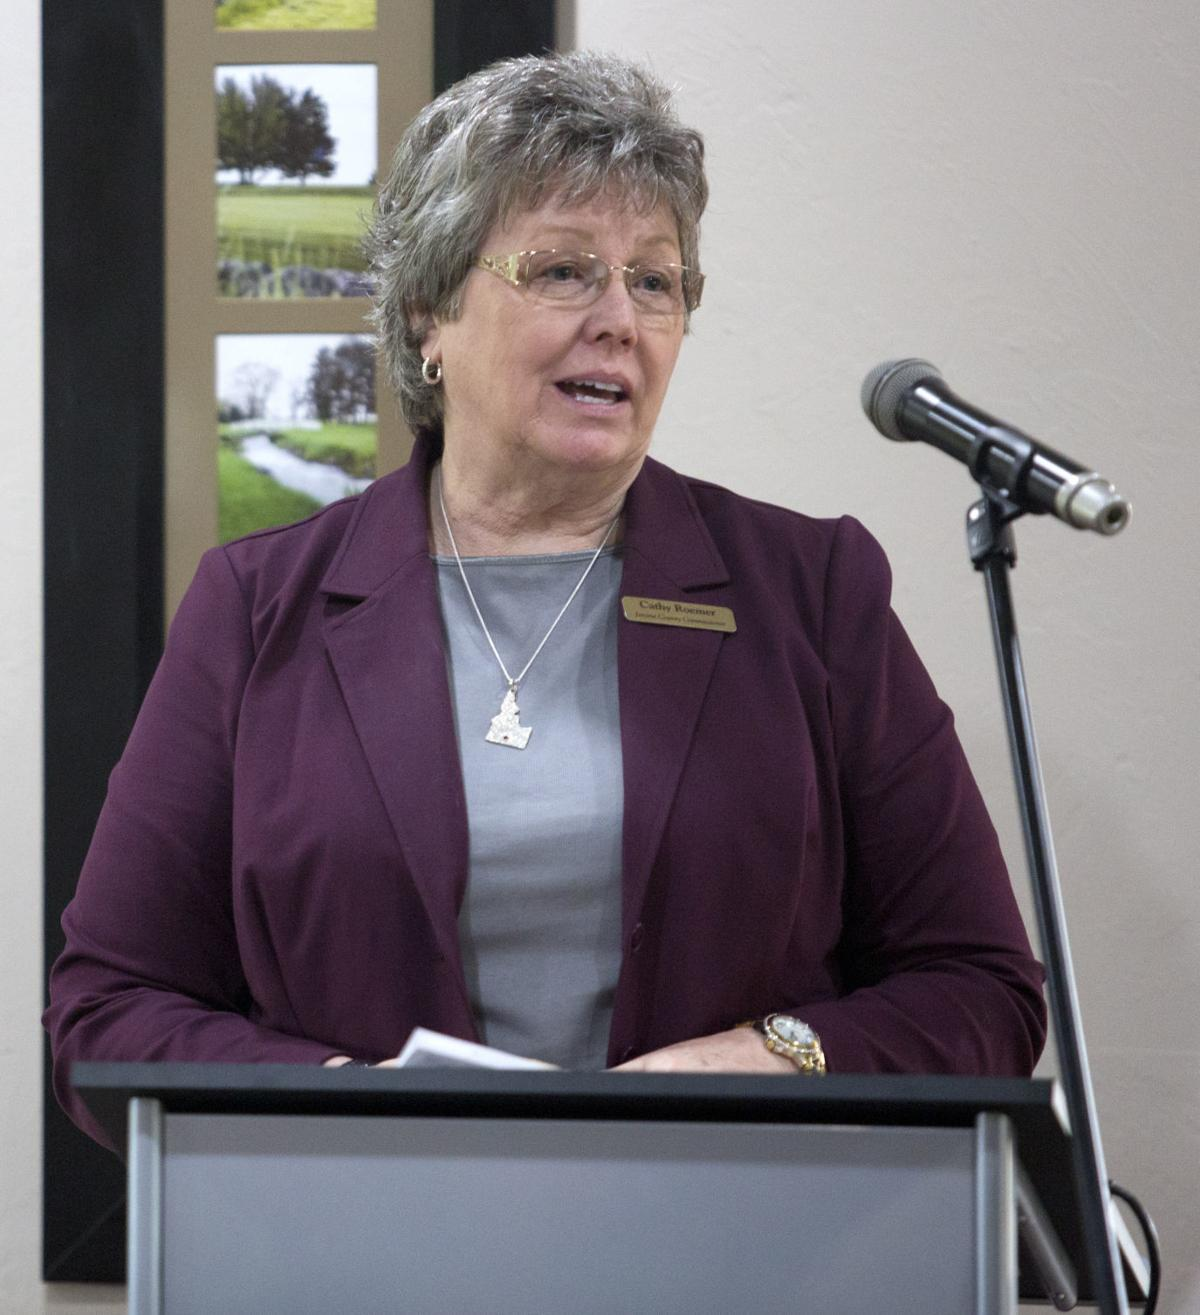 Jerome County Commissioner Cathy Roemer